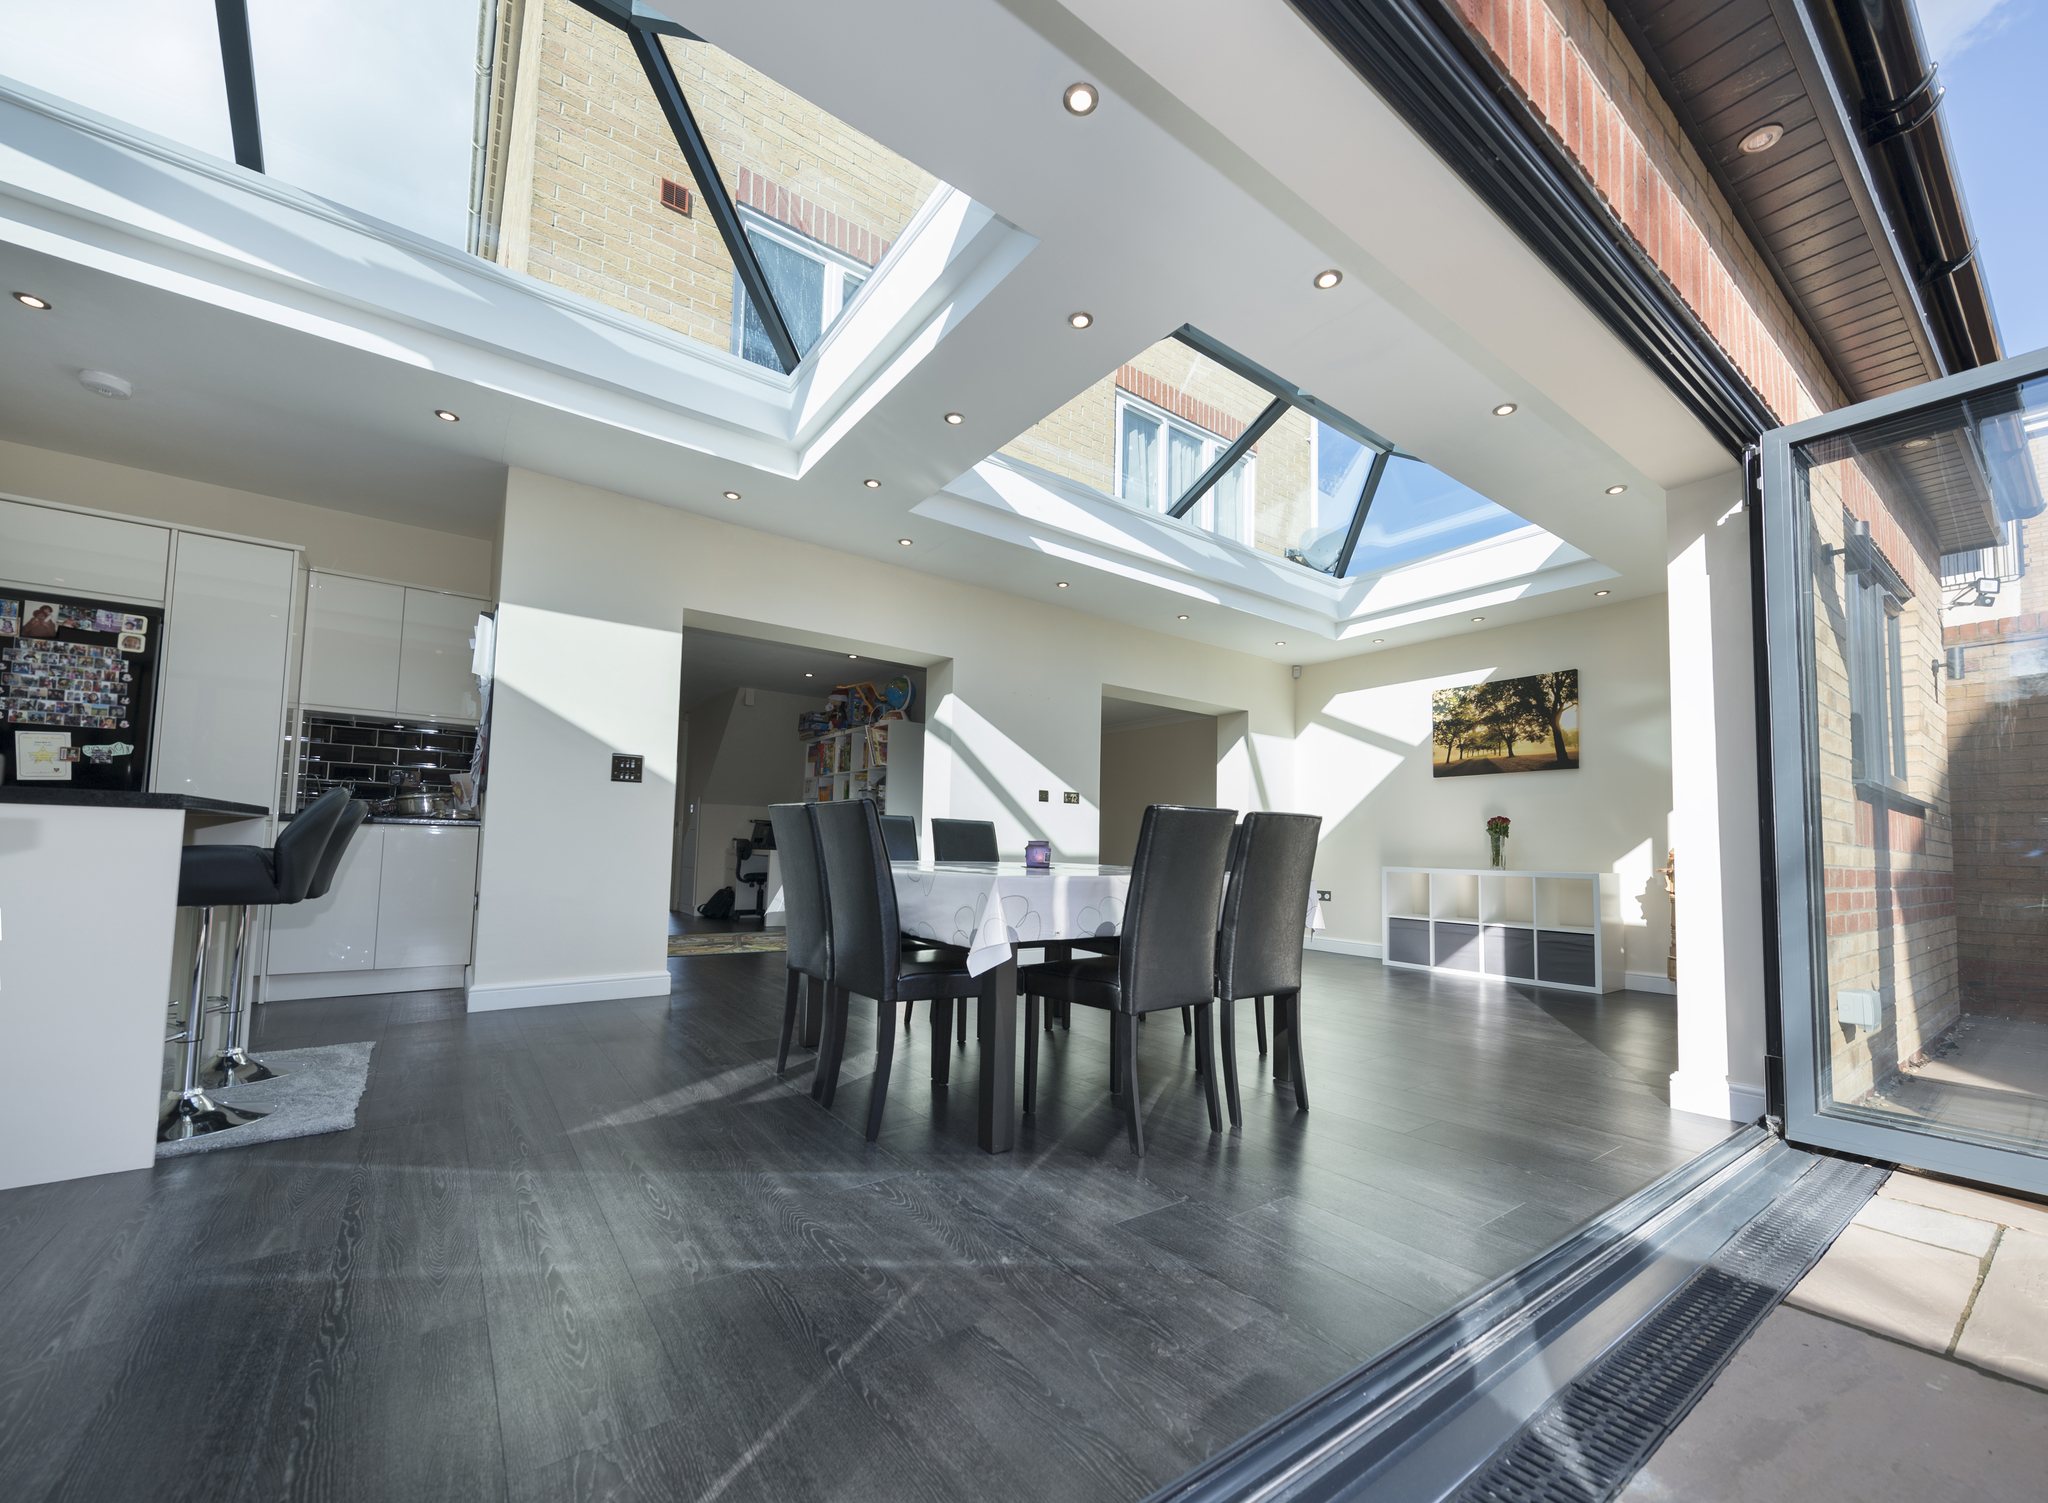 Lantern Roofs for Trade Norwich